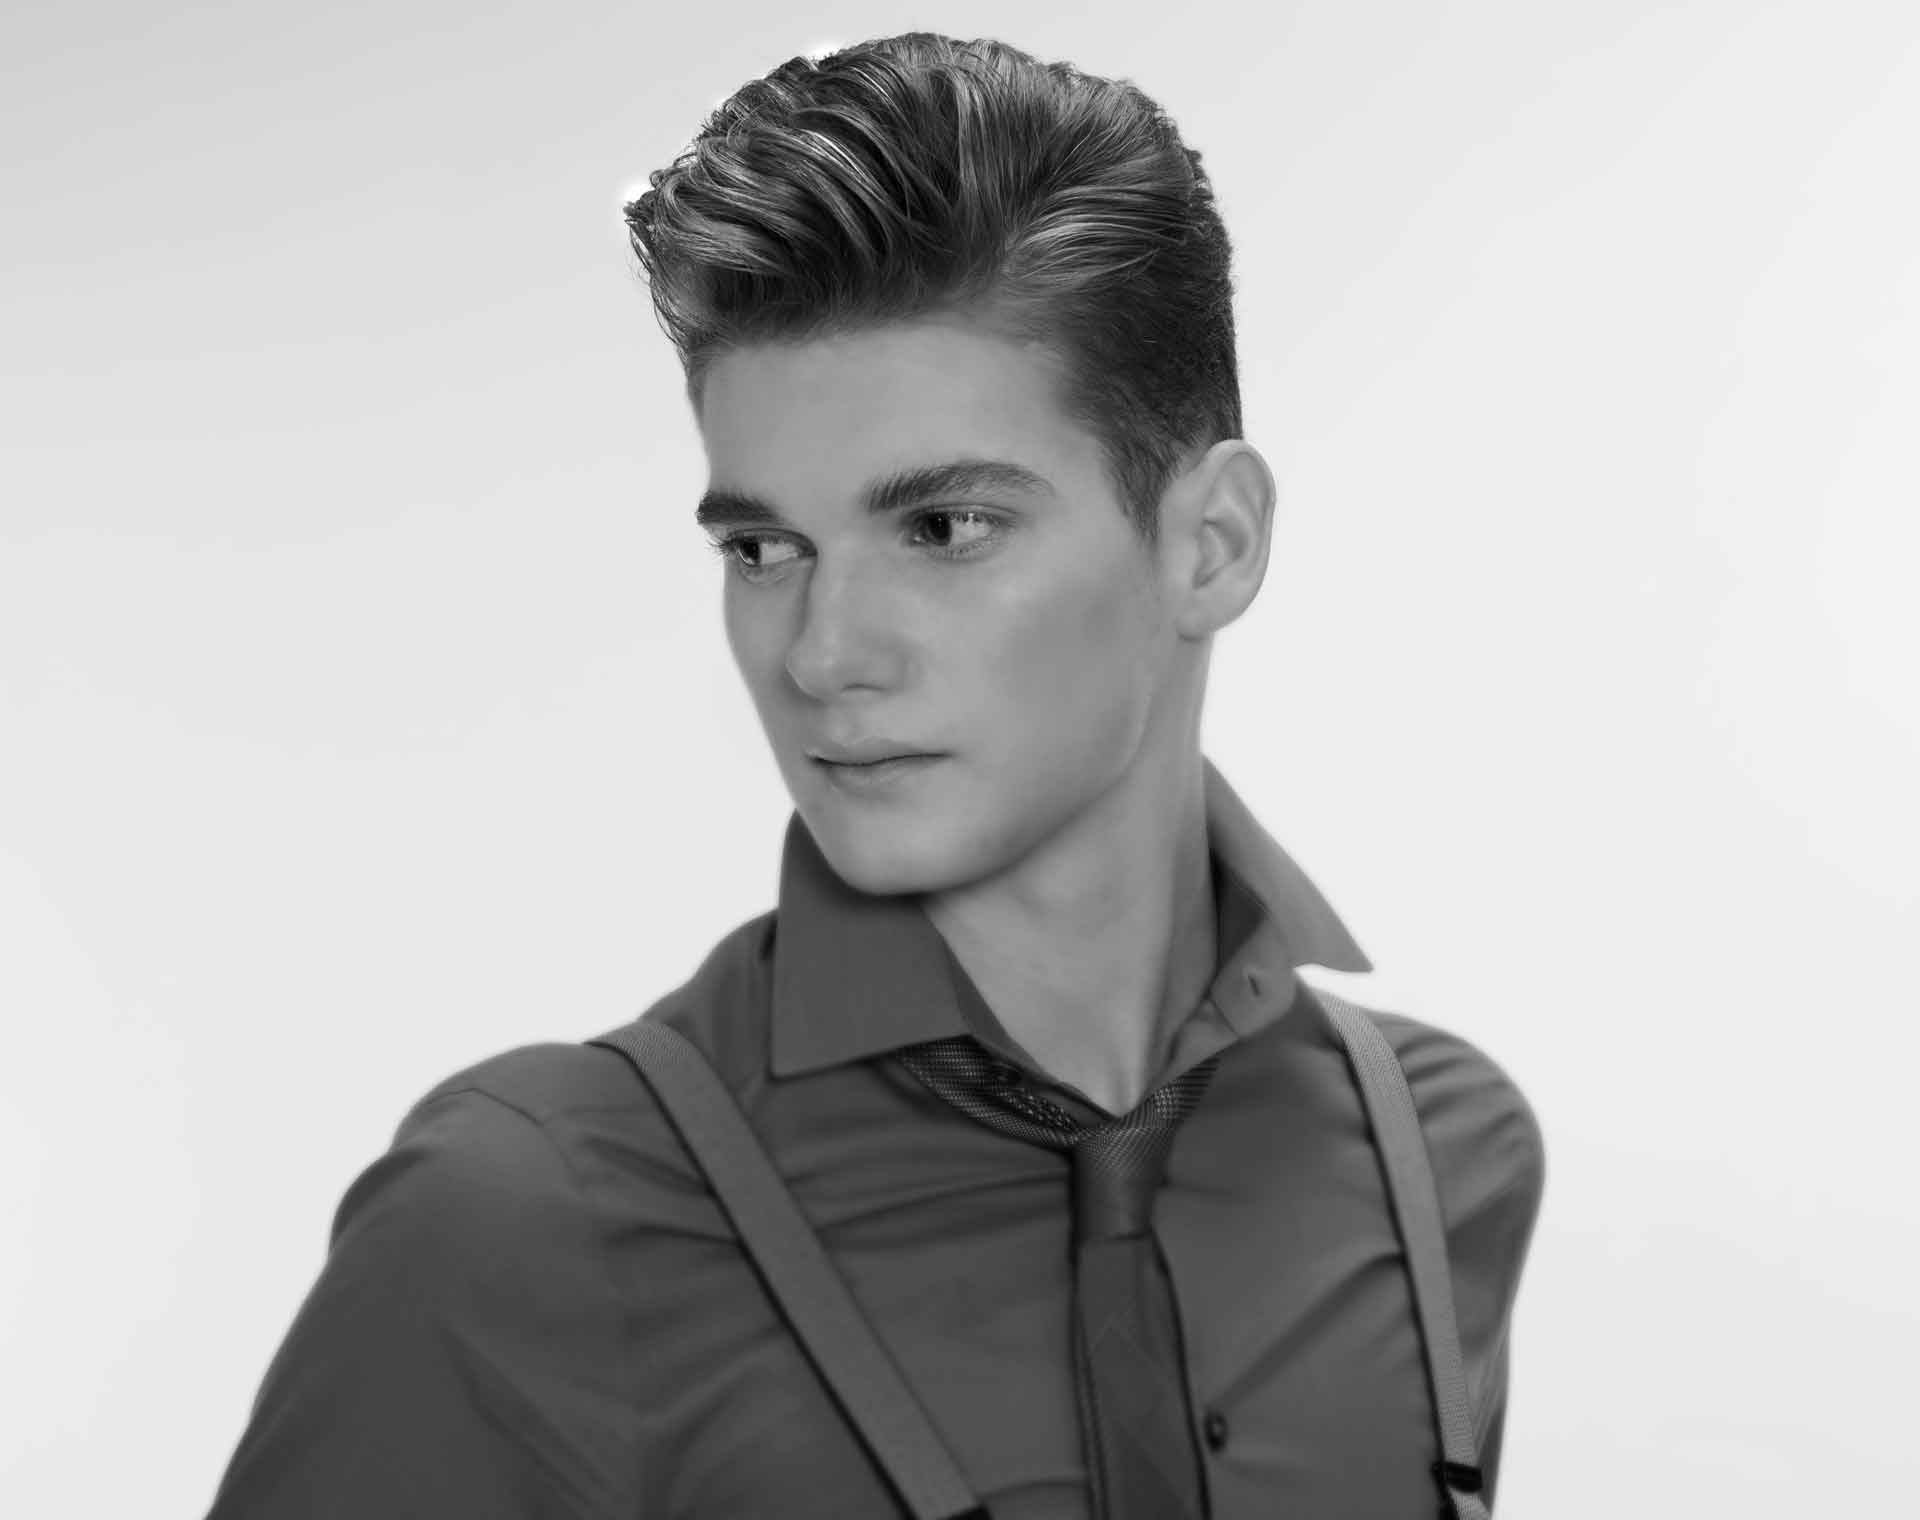 Men s haircut dallas haircuts models ideas for Aalam salon dallas